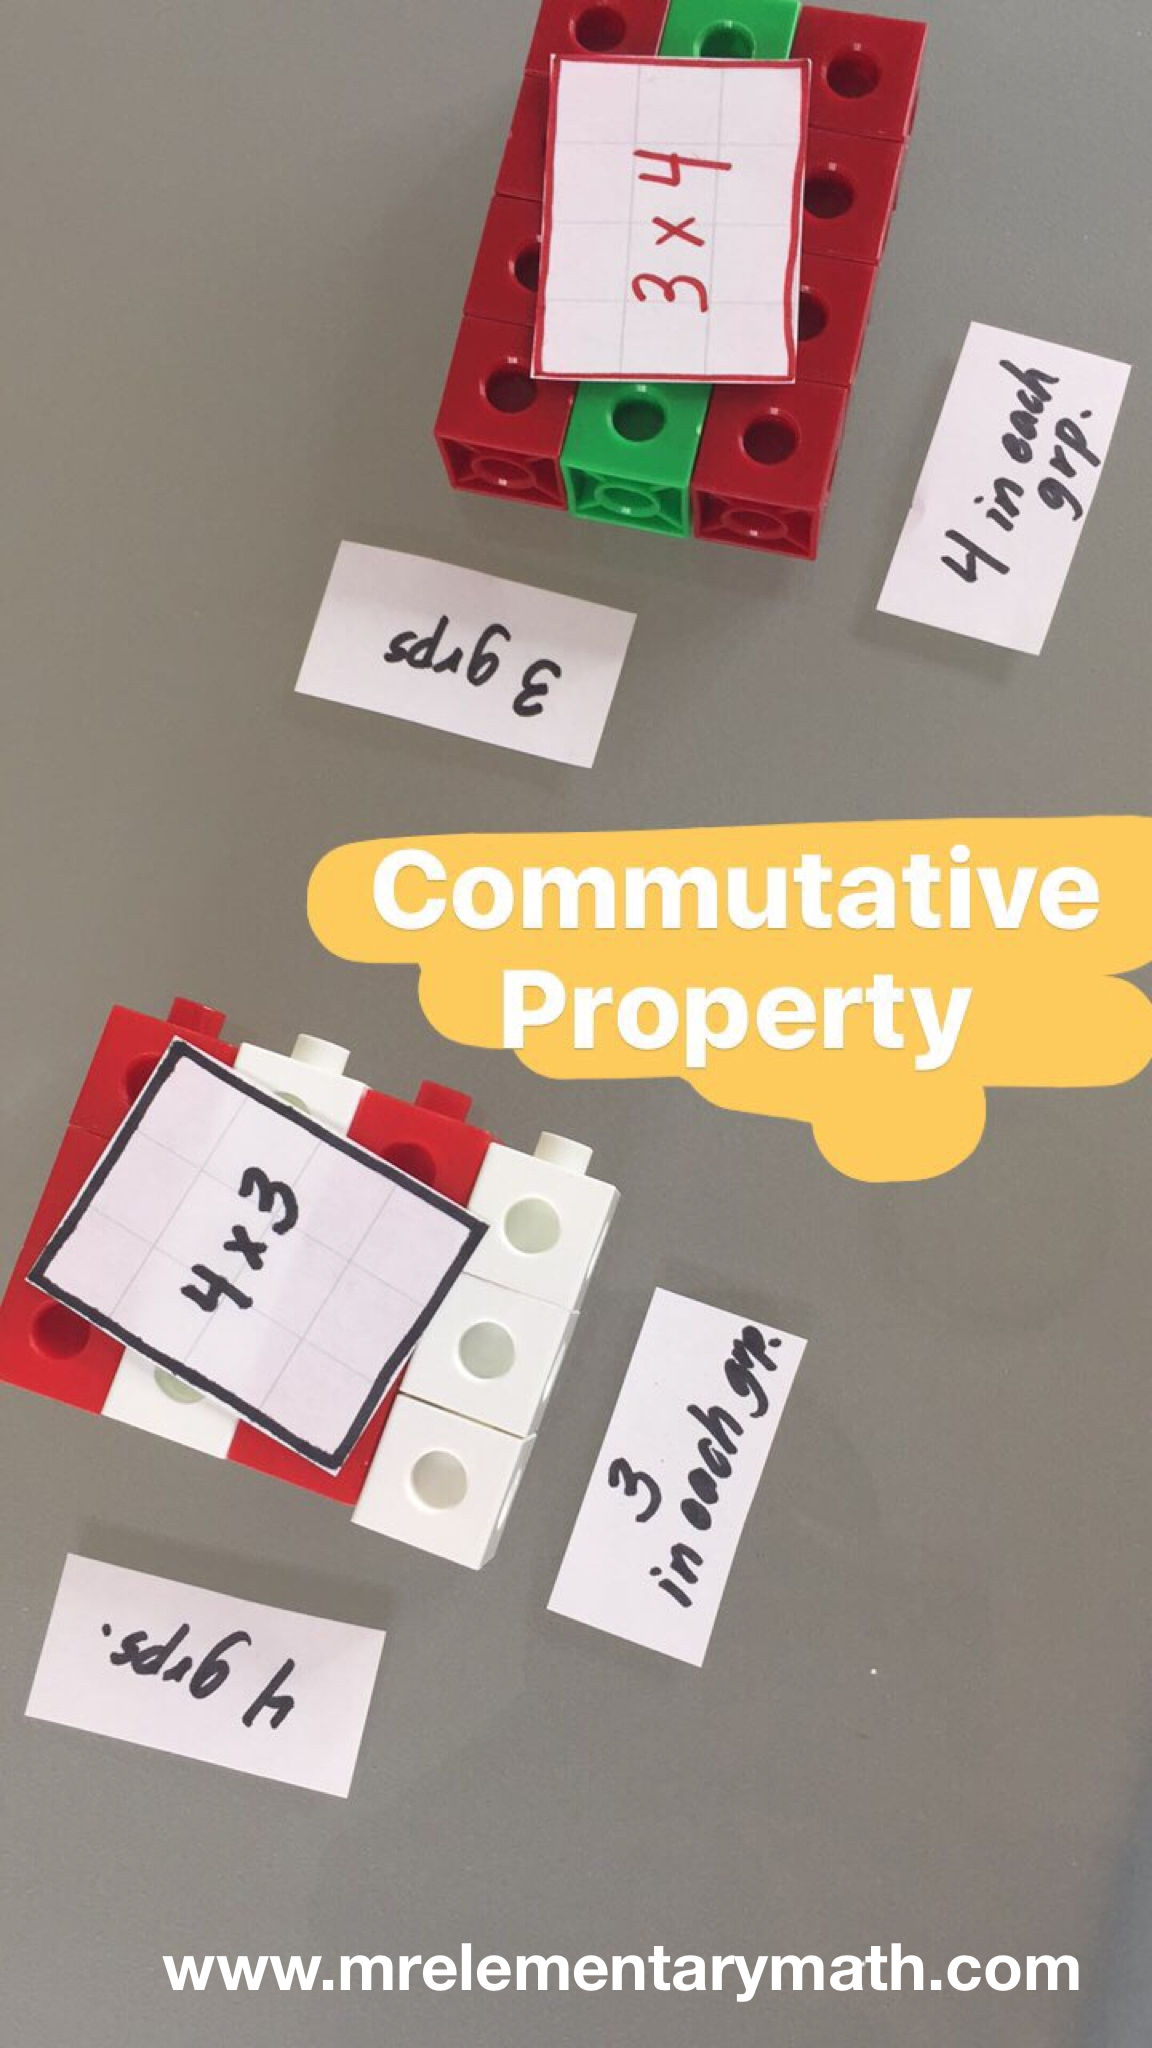 Watch This Video To Learn How To Use Math Manipulatives And Models To Teach Properties Of